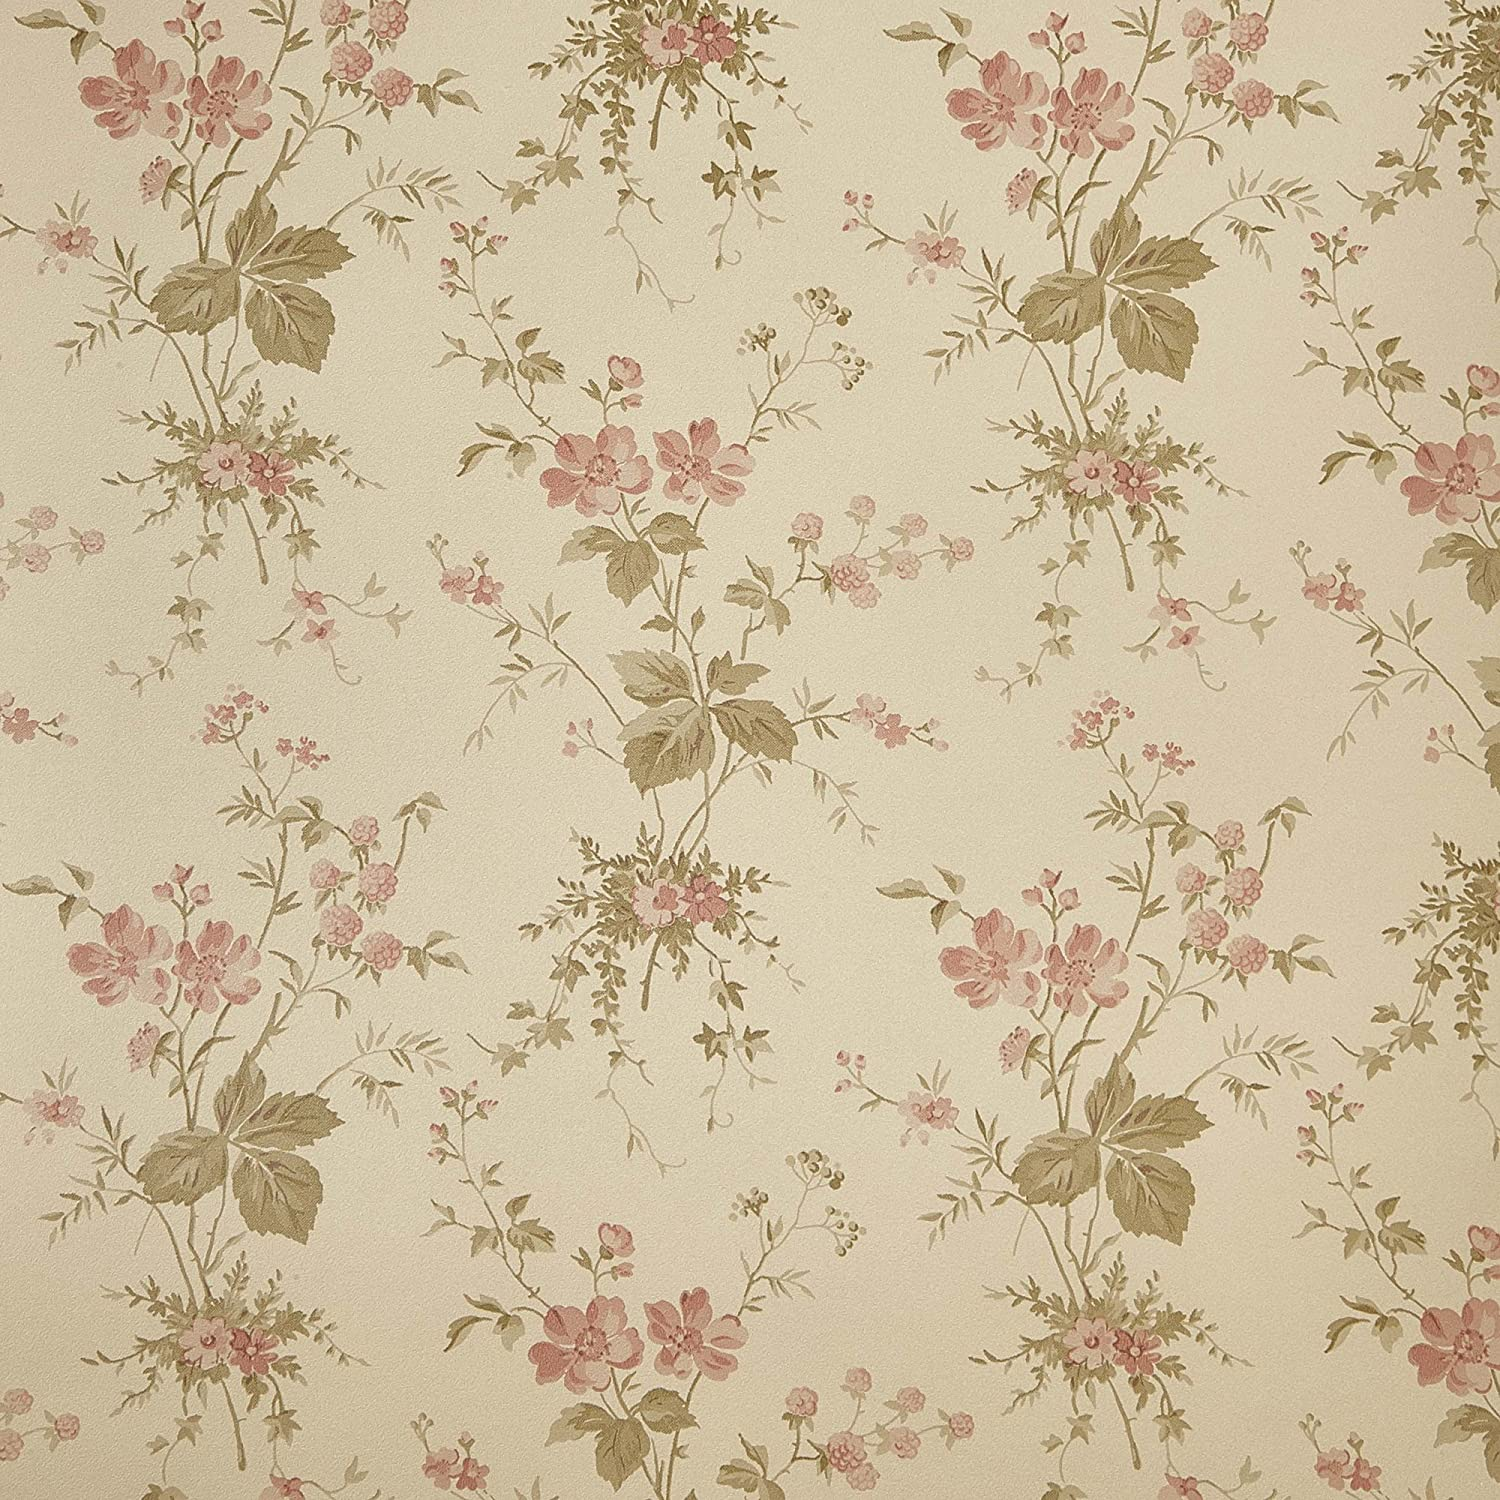 Press Floral Beige Wallpaper For Walls Double Roll By Romosa